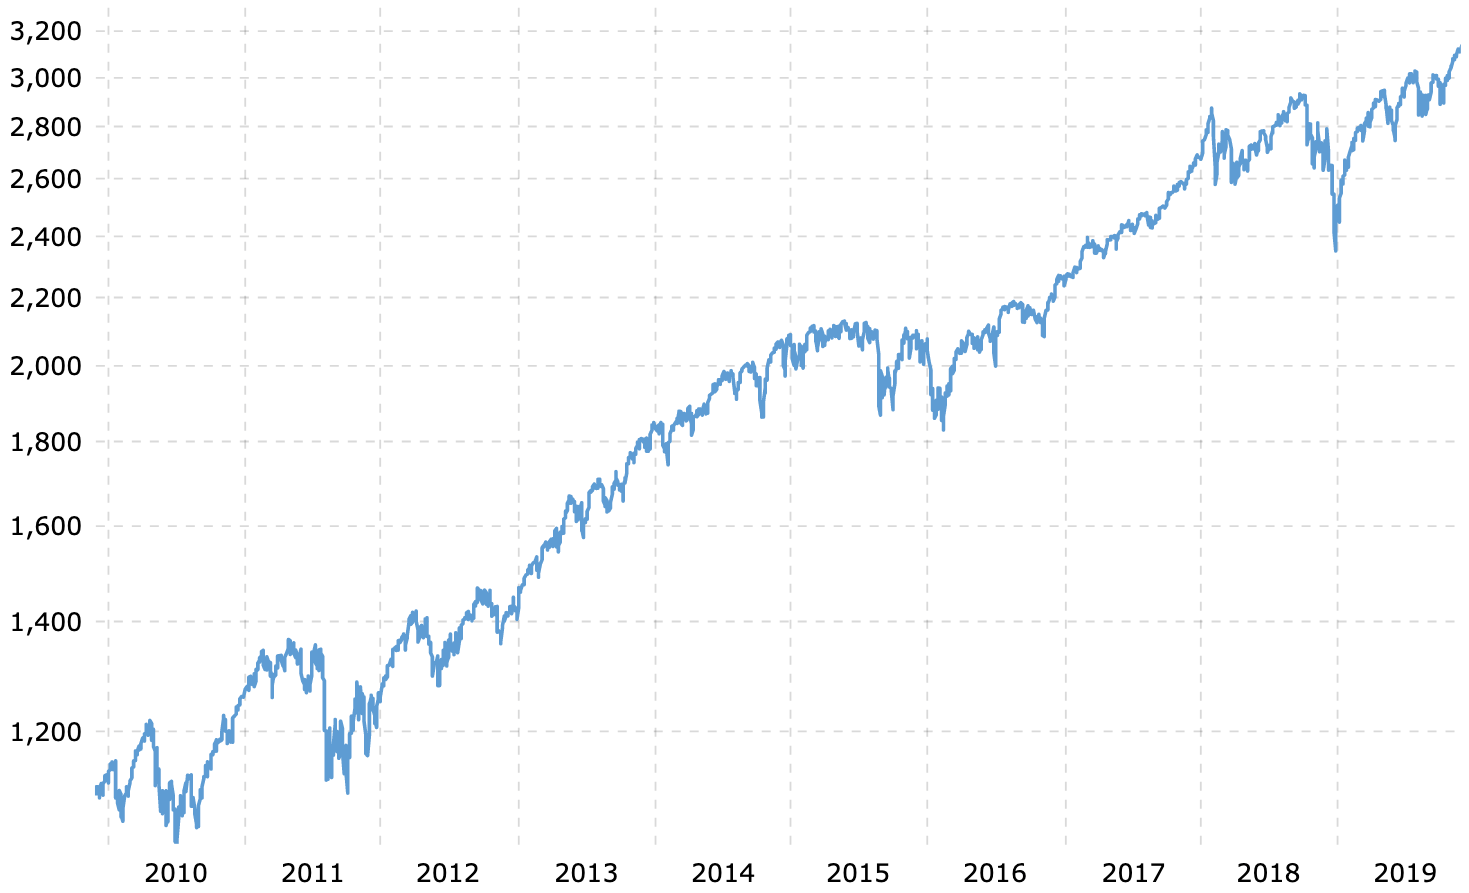 S&P 500 10-year bull market chart from 2009 - 2019